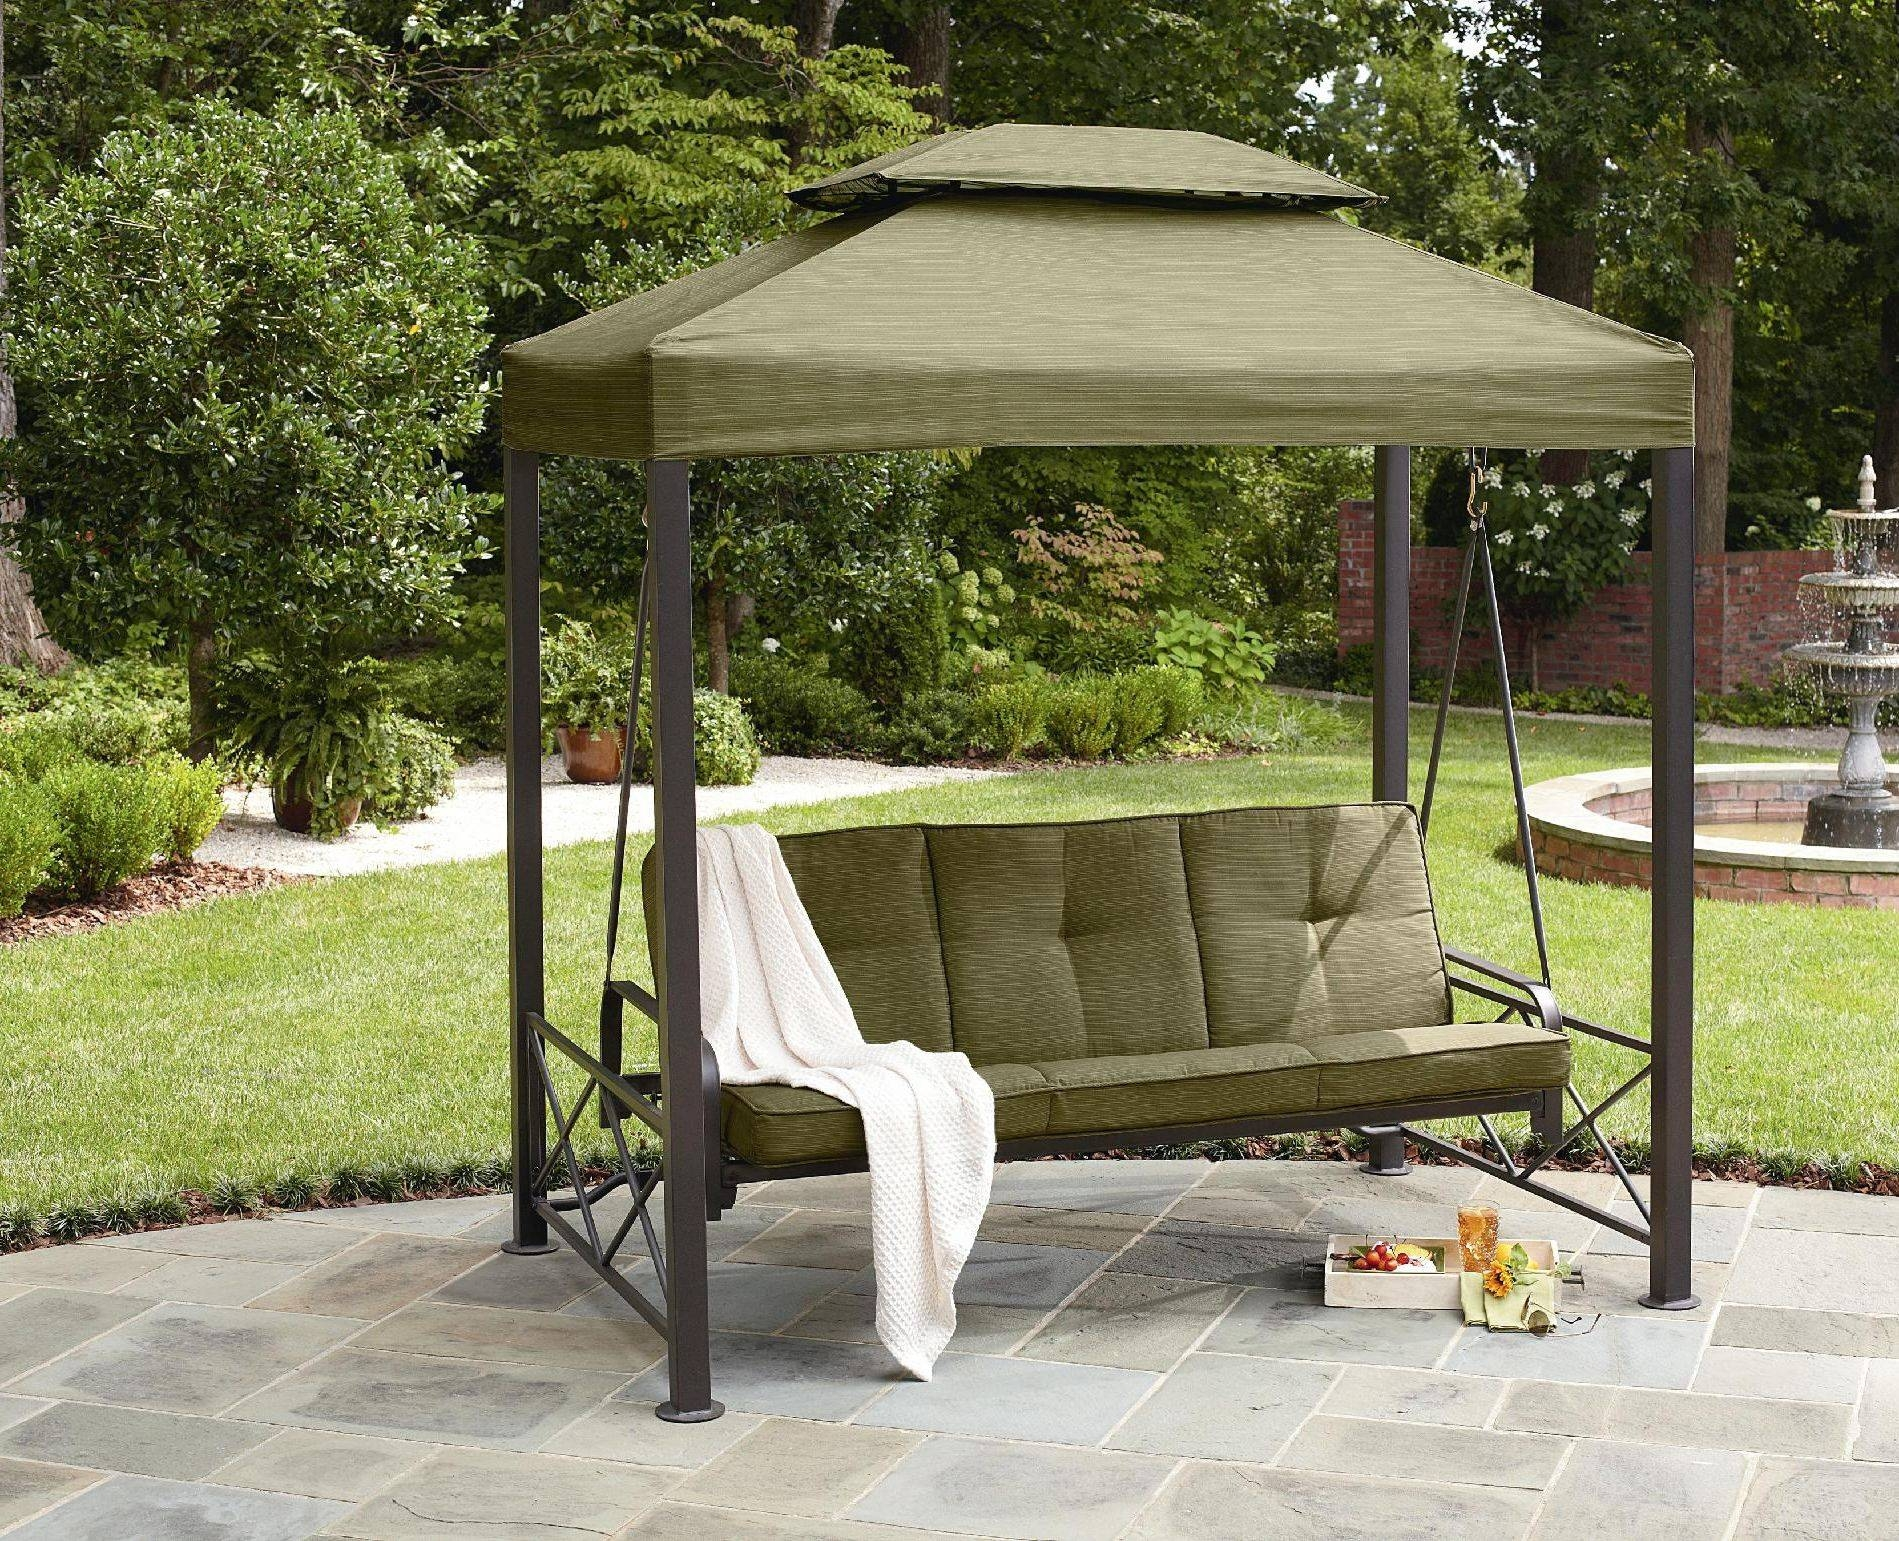 Patio Swing Canopy Cover Backyard And Outdoor Furniture Ideas inside Outdoor Sofas With Canopy (Image 29 of 30)